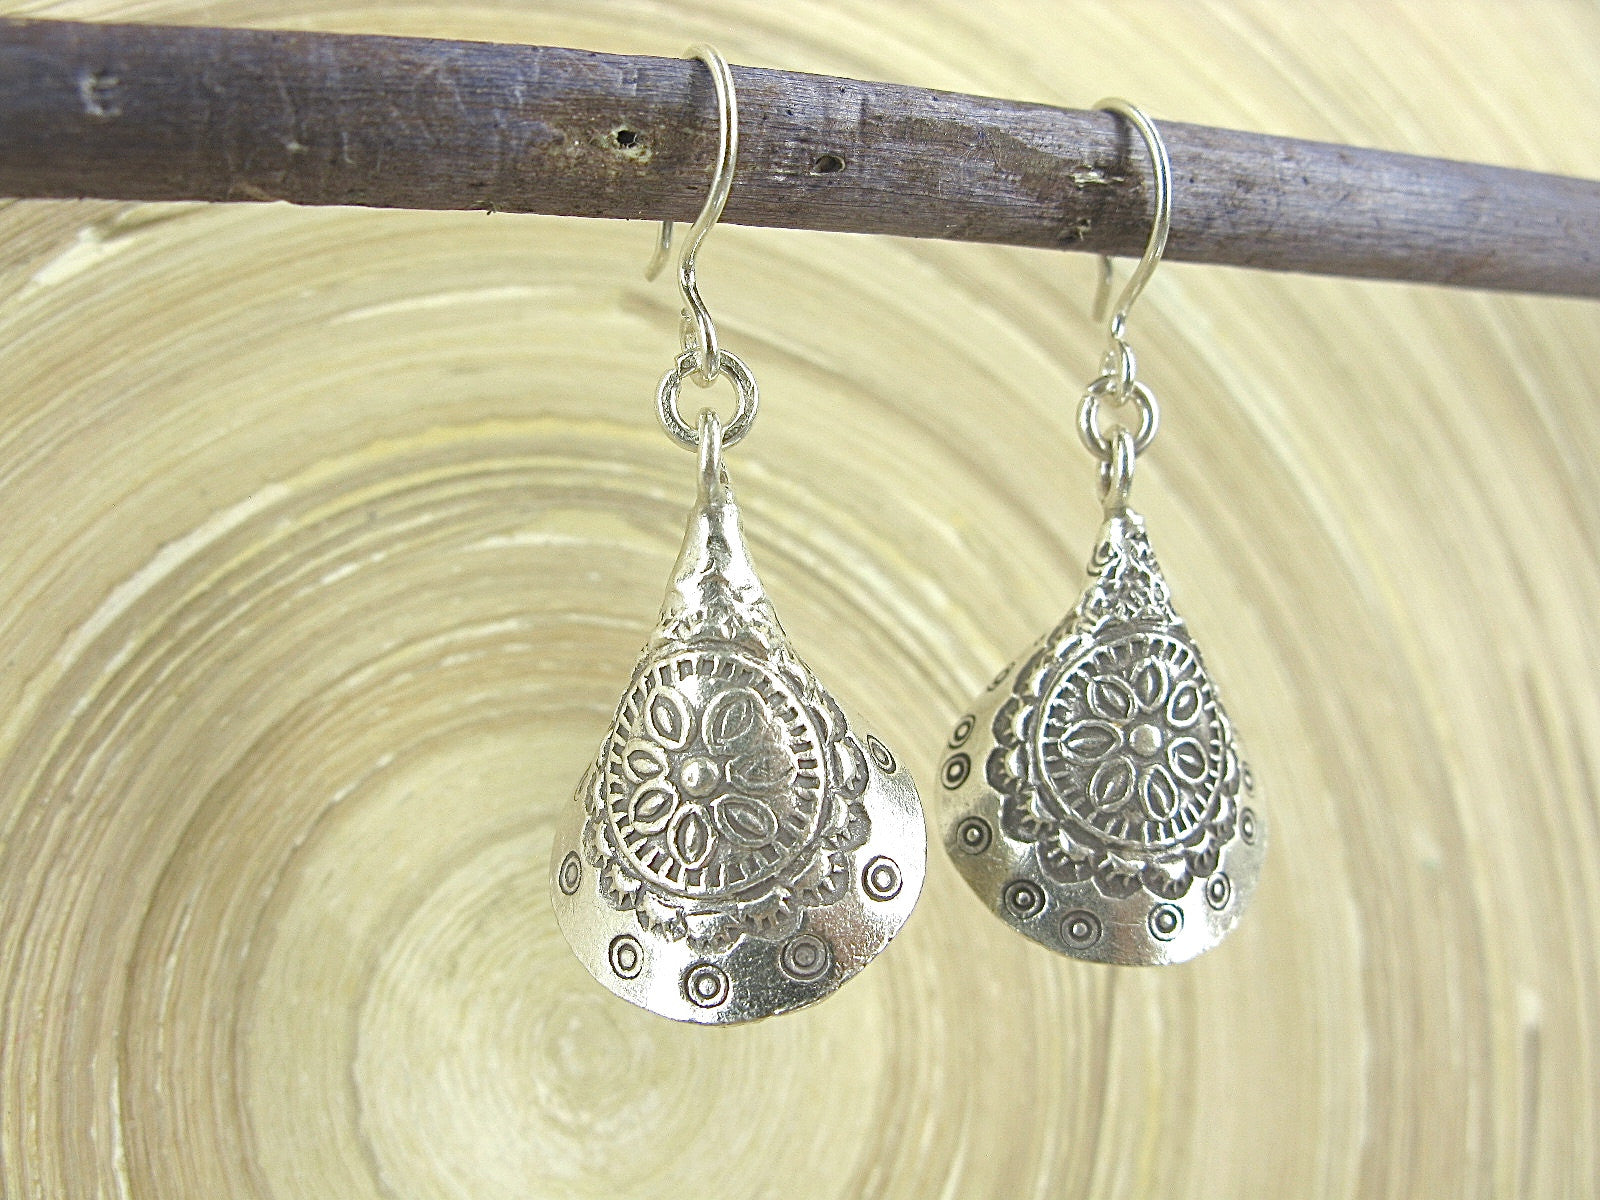 Engrave Tribal Dangle Oxidized 925 Sterling Silver Earrings Earrings Faith Owl - Faith Owl